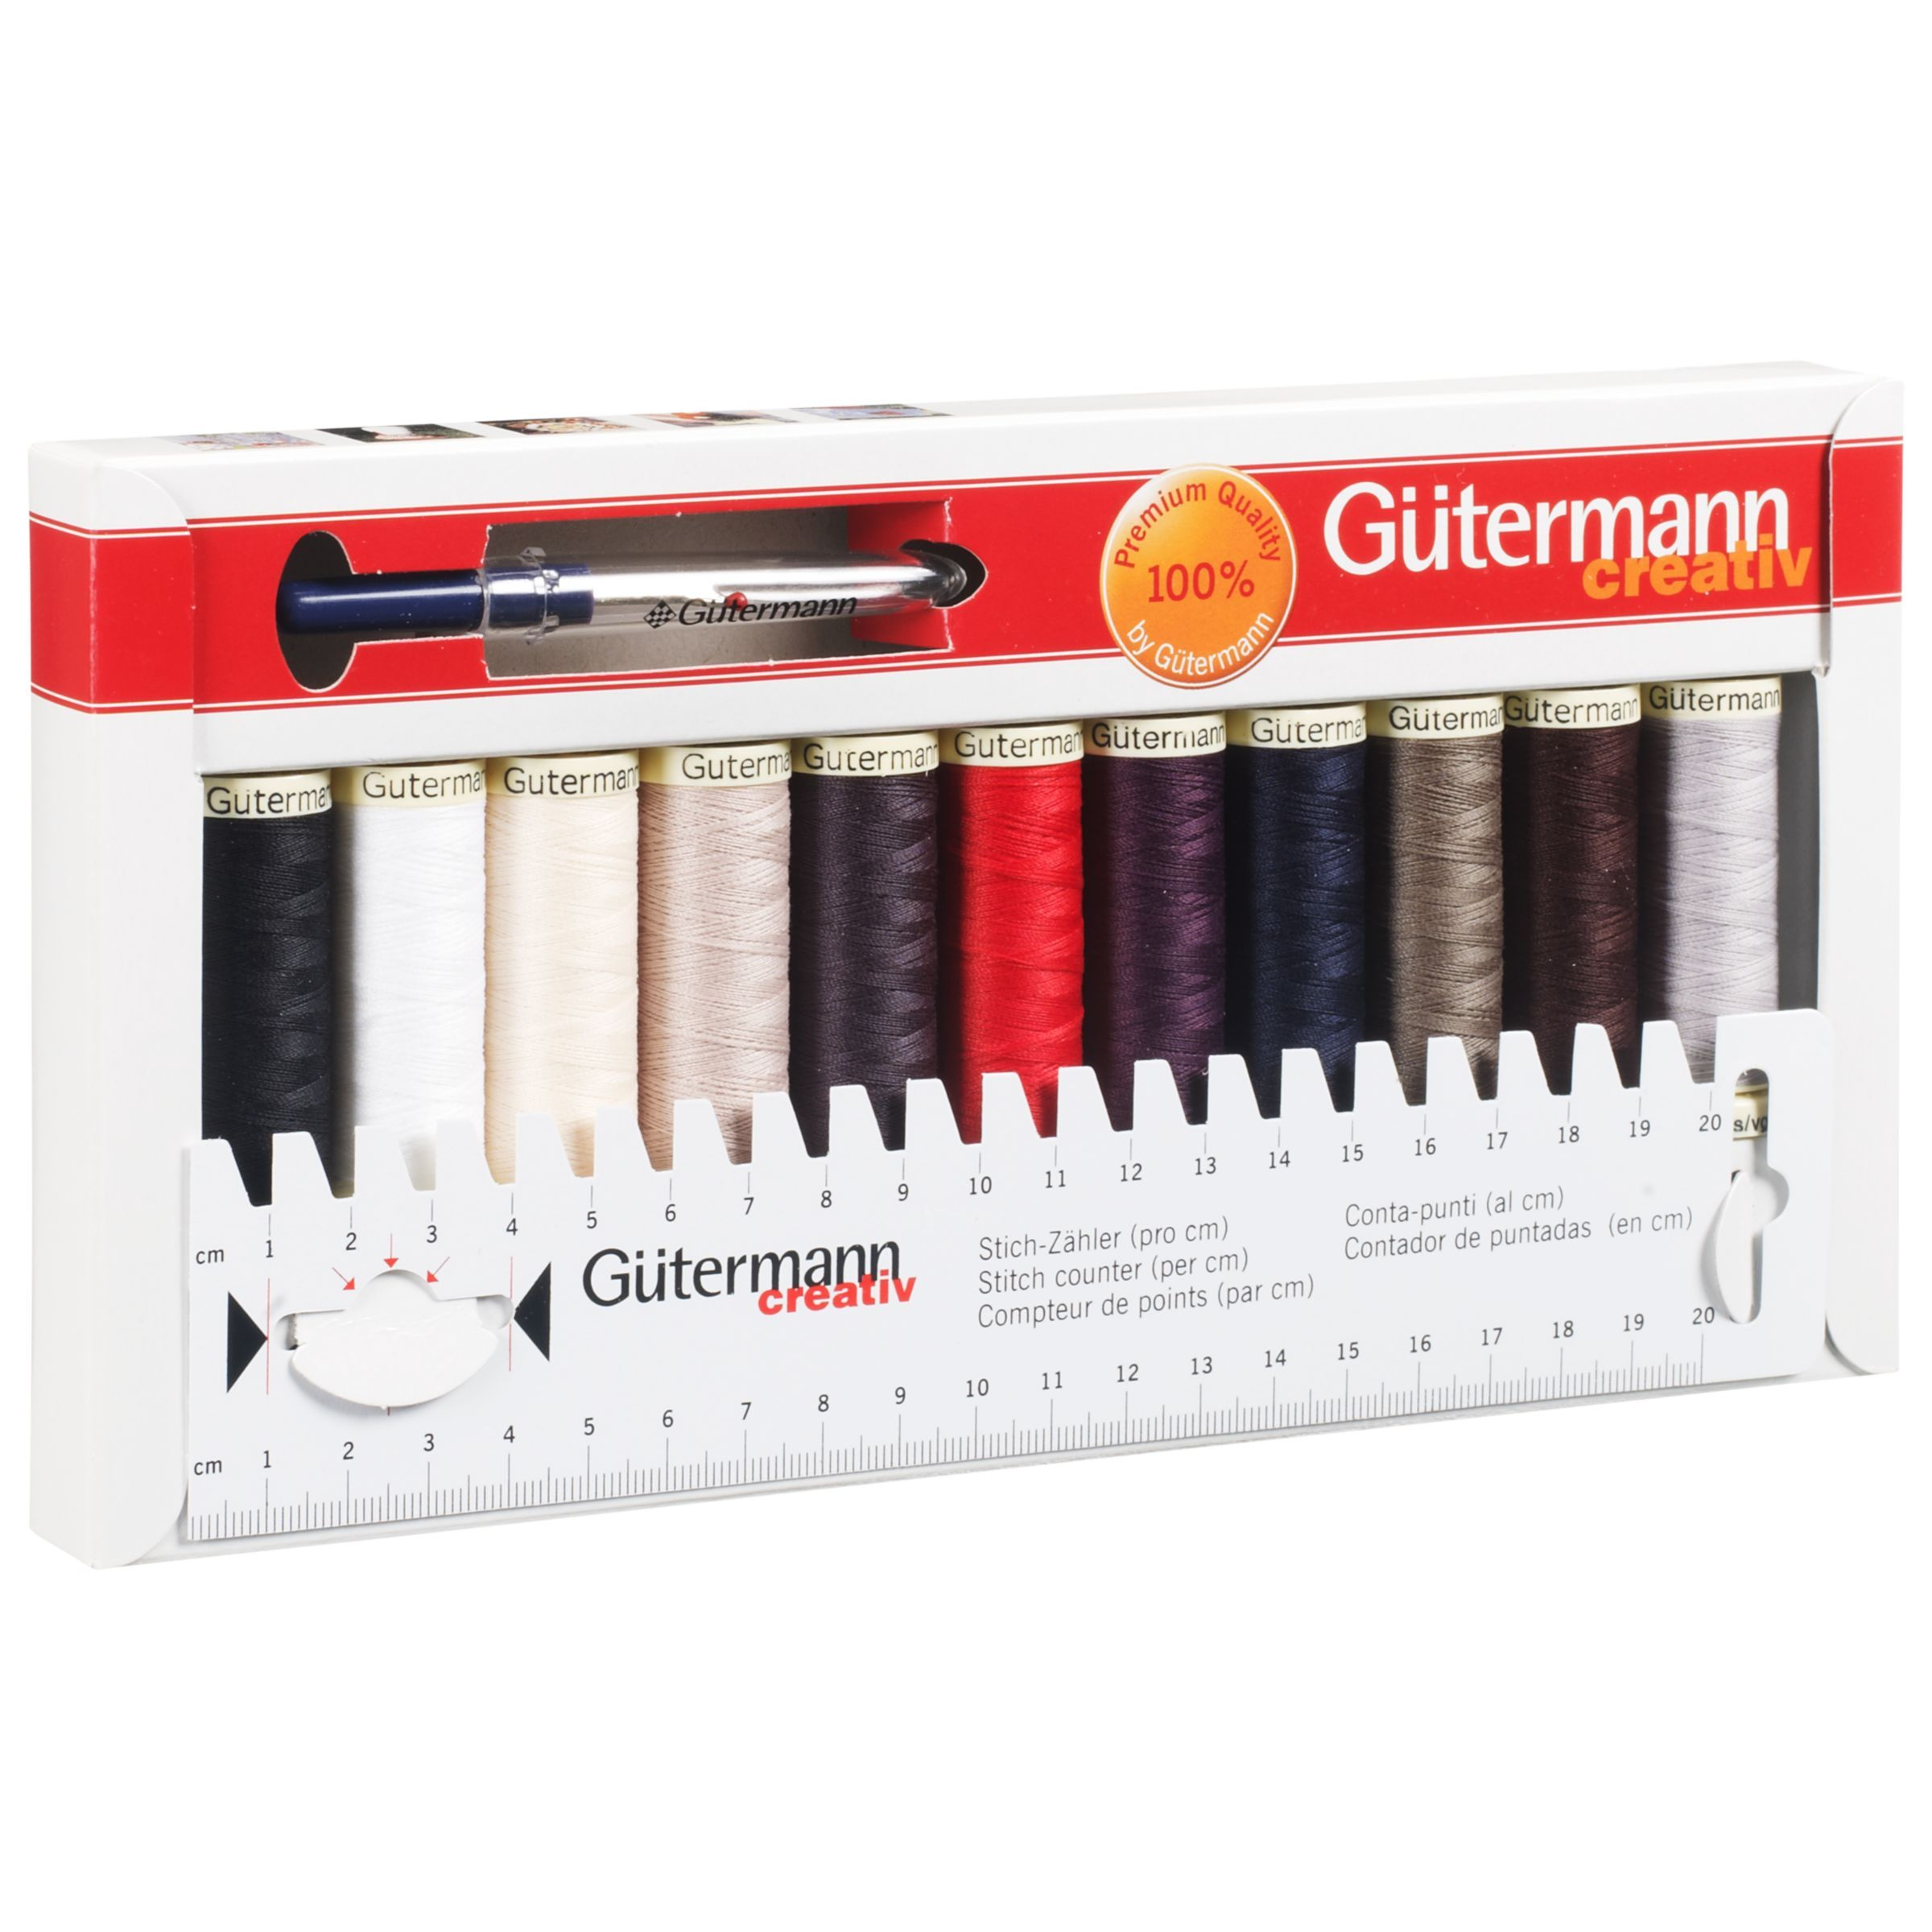 10 x Gutermann Rayon Thread Assorted Colour Reel Machine Embroidery Sewing Craft